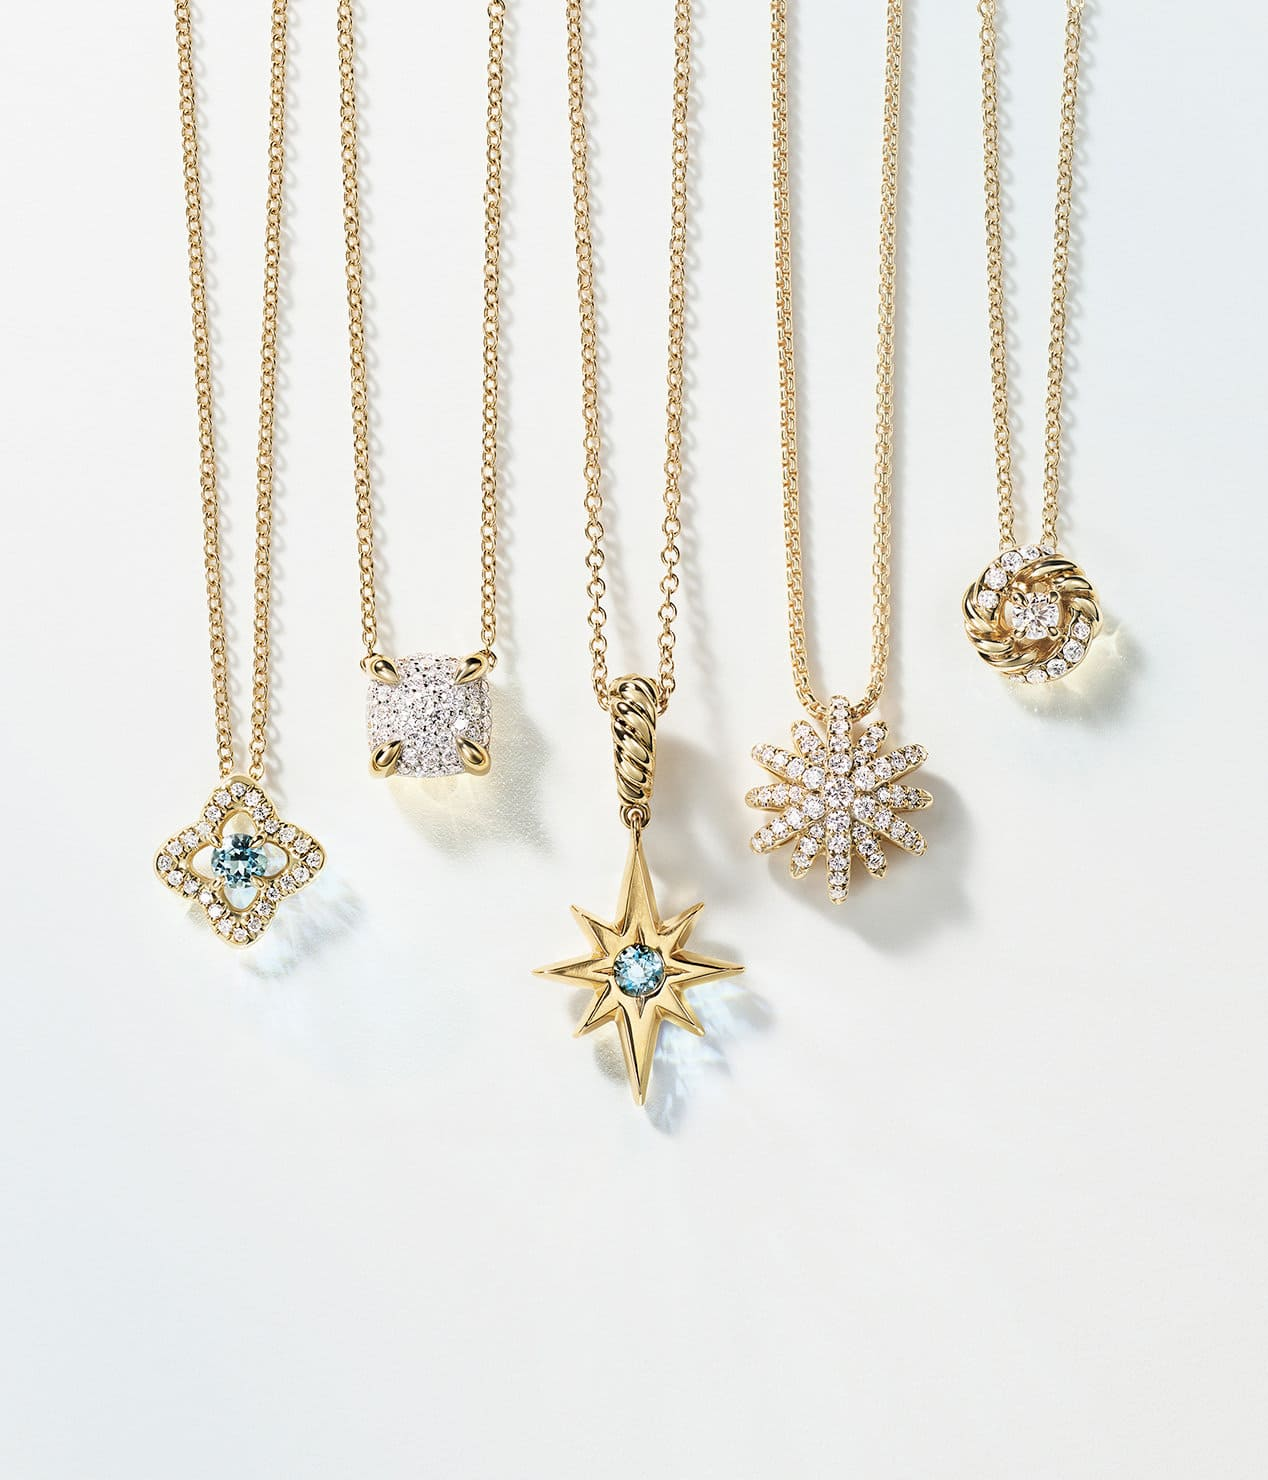 A color photograph shows a horizontal row of five David Yurman charm necklaces hanging in front of a white background. The women's jewelry is crafted from 18K yellow gold with or without pavé diamonds and aquamarine center stones. The pendants come in various shapes such as a star, circle, cushion and quatrefoil.